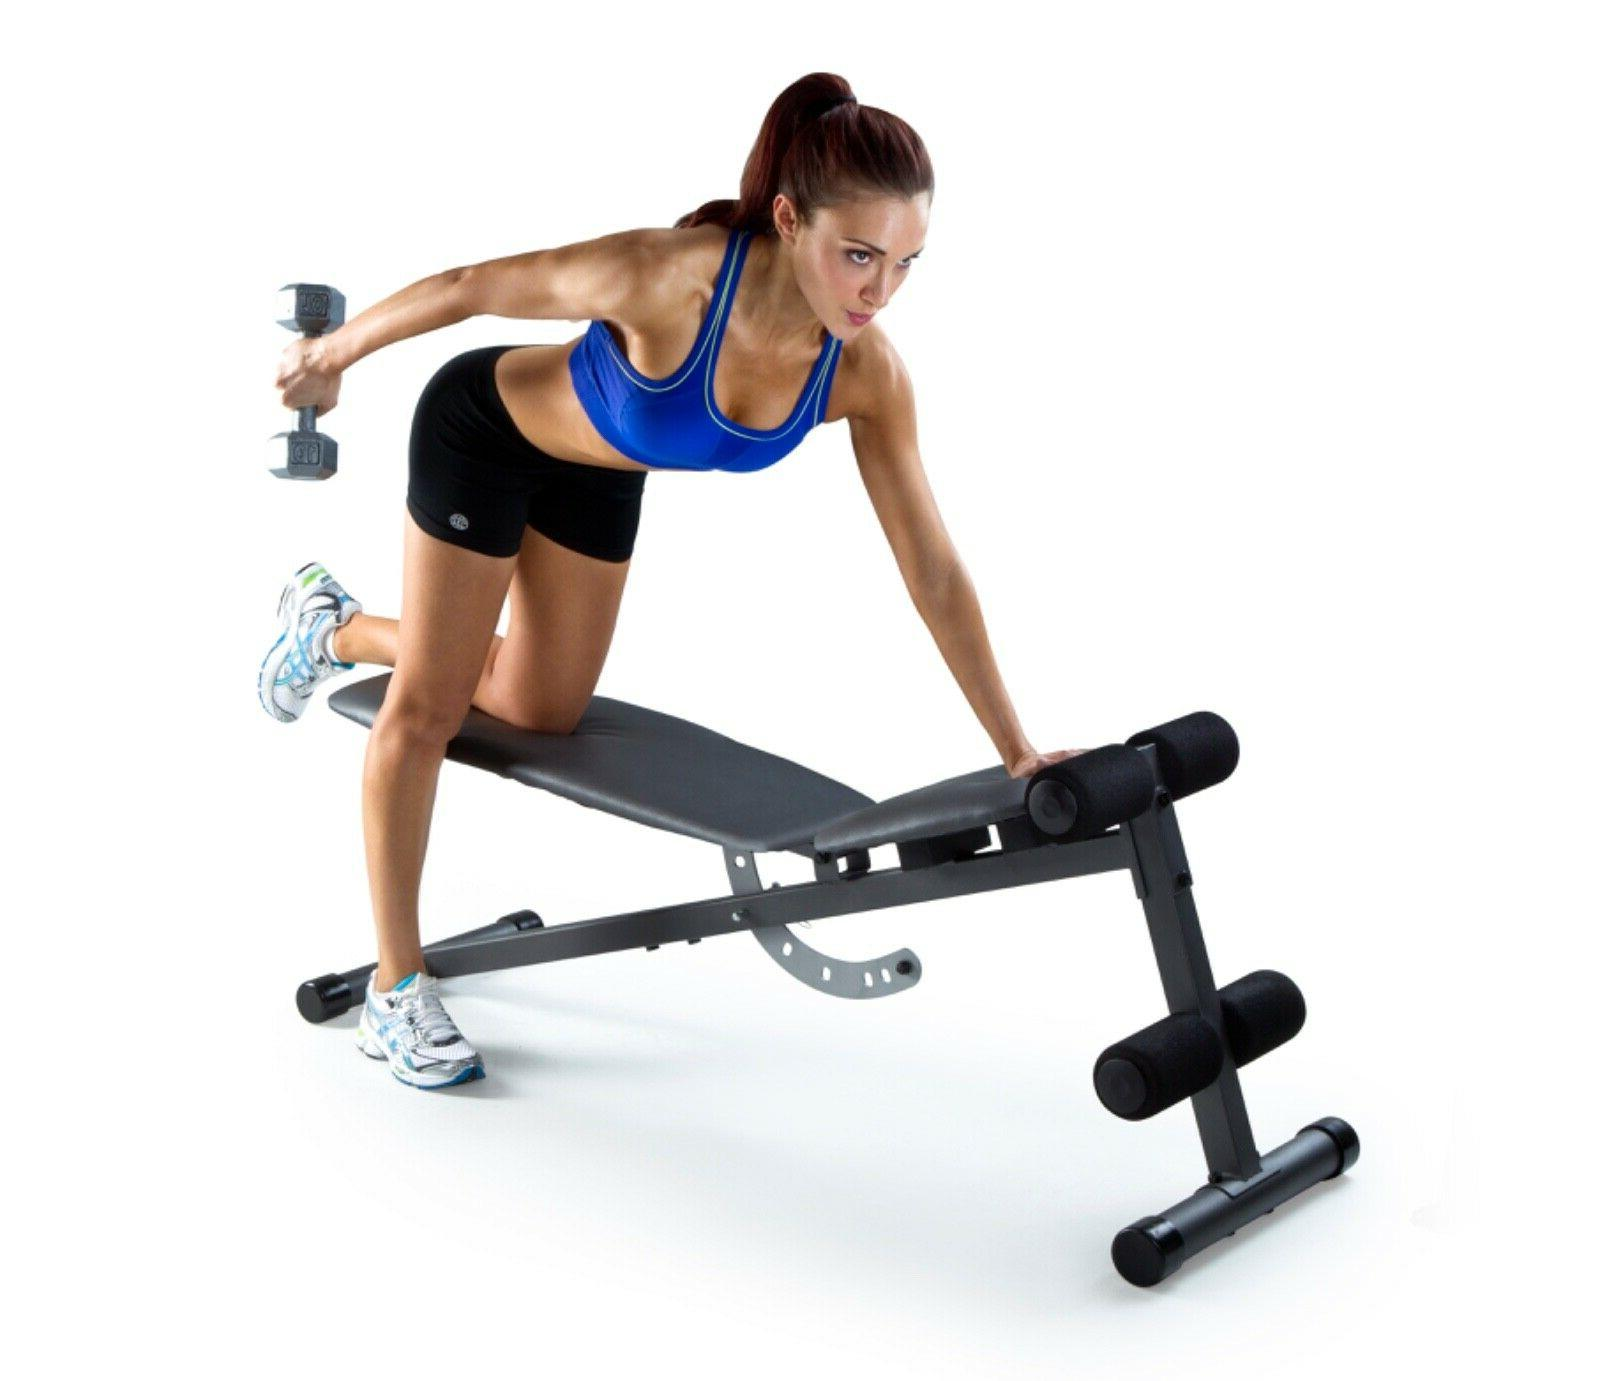 Incline Exercise Strength Workout